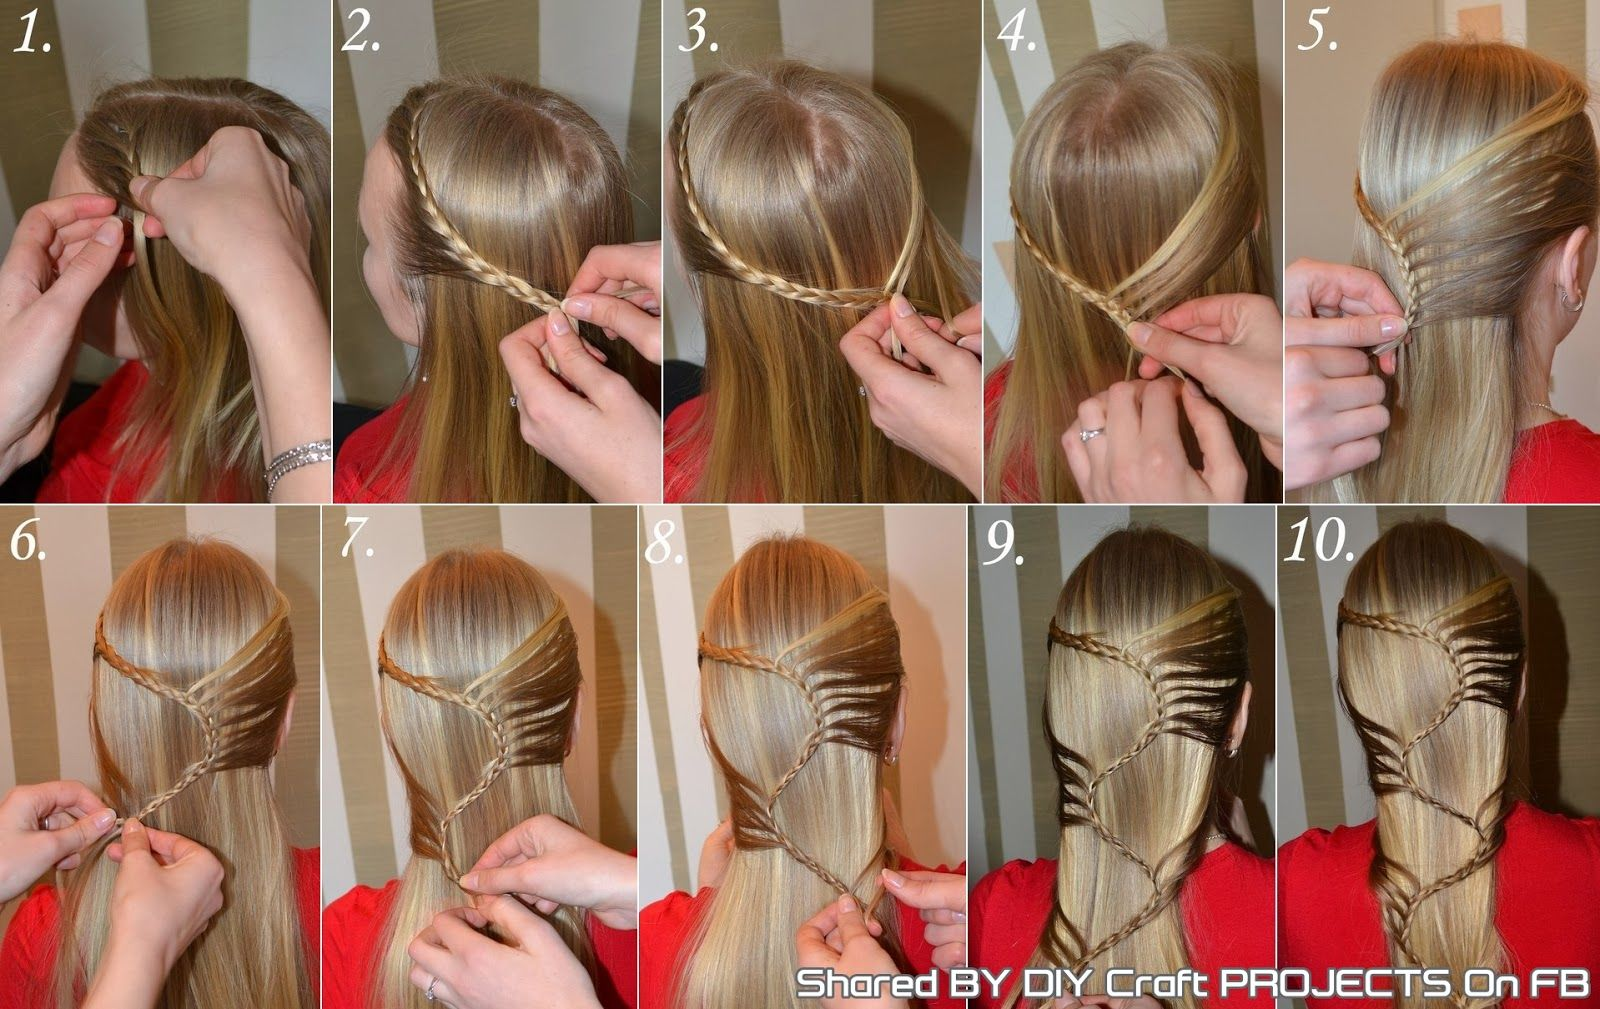 Astonishing 1000 Images About Braids On Pinterest Unique Braided Hairstyles Hairstyles For Women Draintrainus